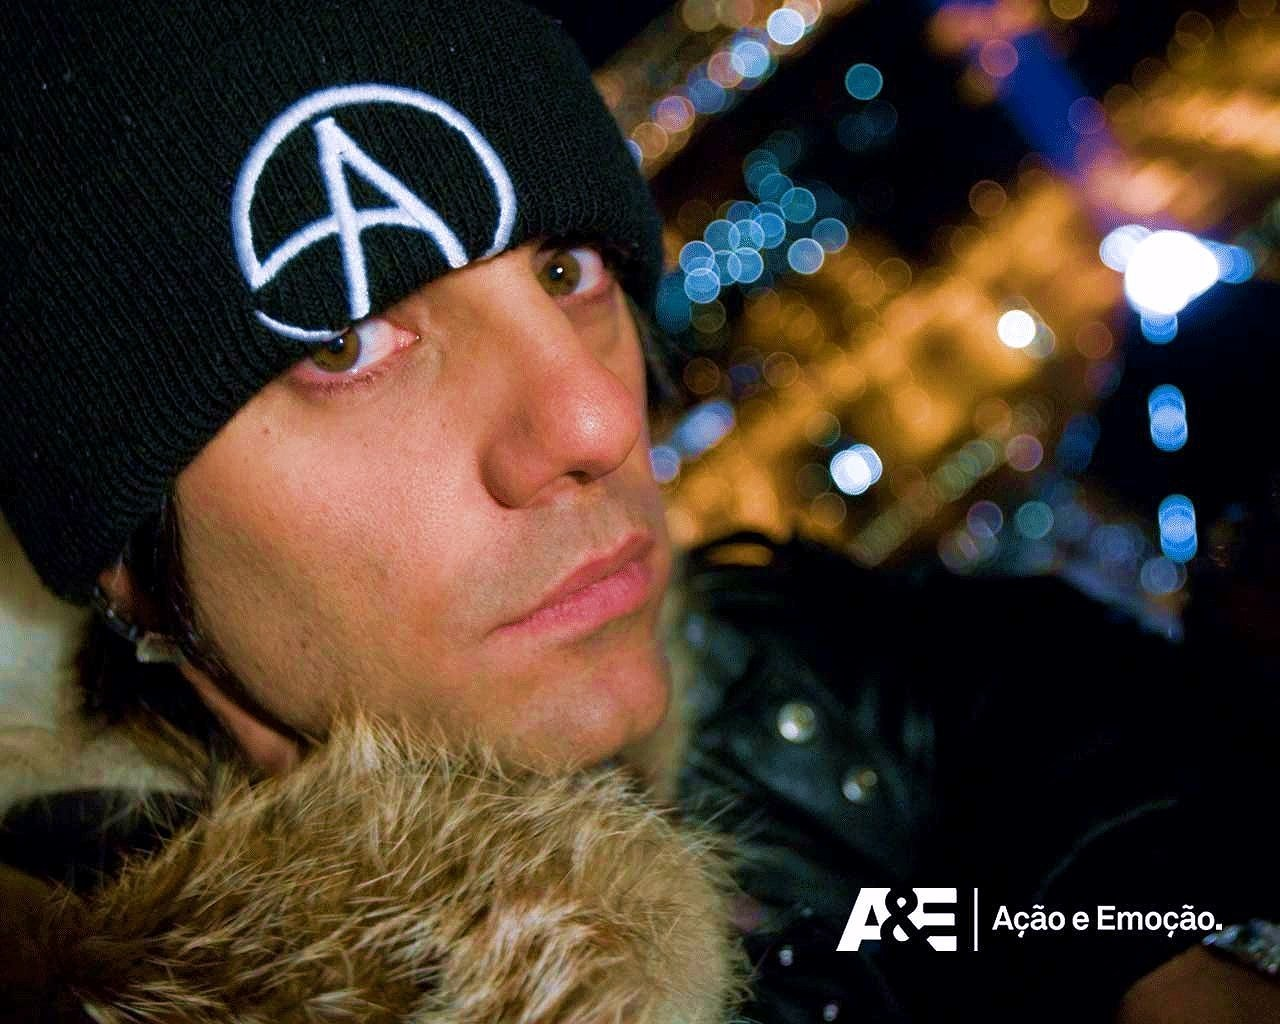 criss angel images criss angel baby hd wallpaper and background